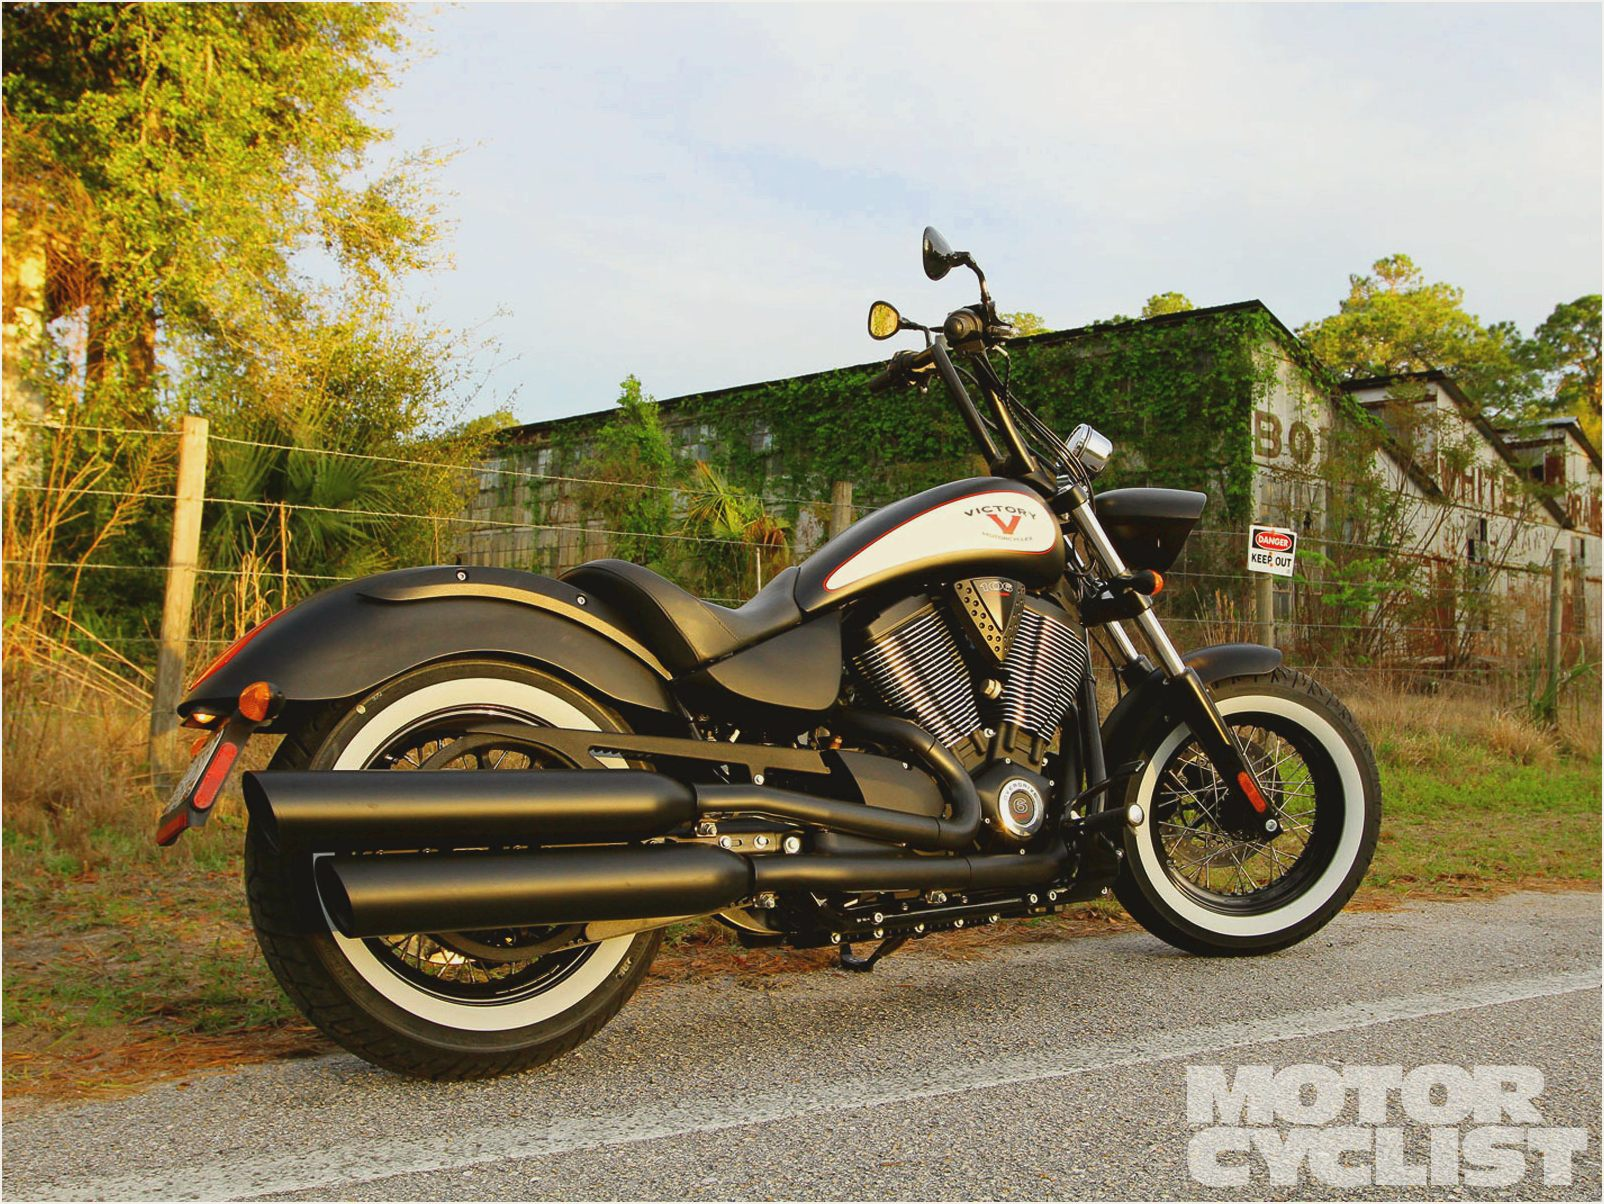 Victory Cruiser Deluxe 1500 2000 images #129427